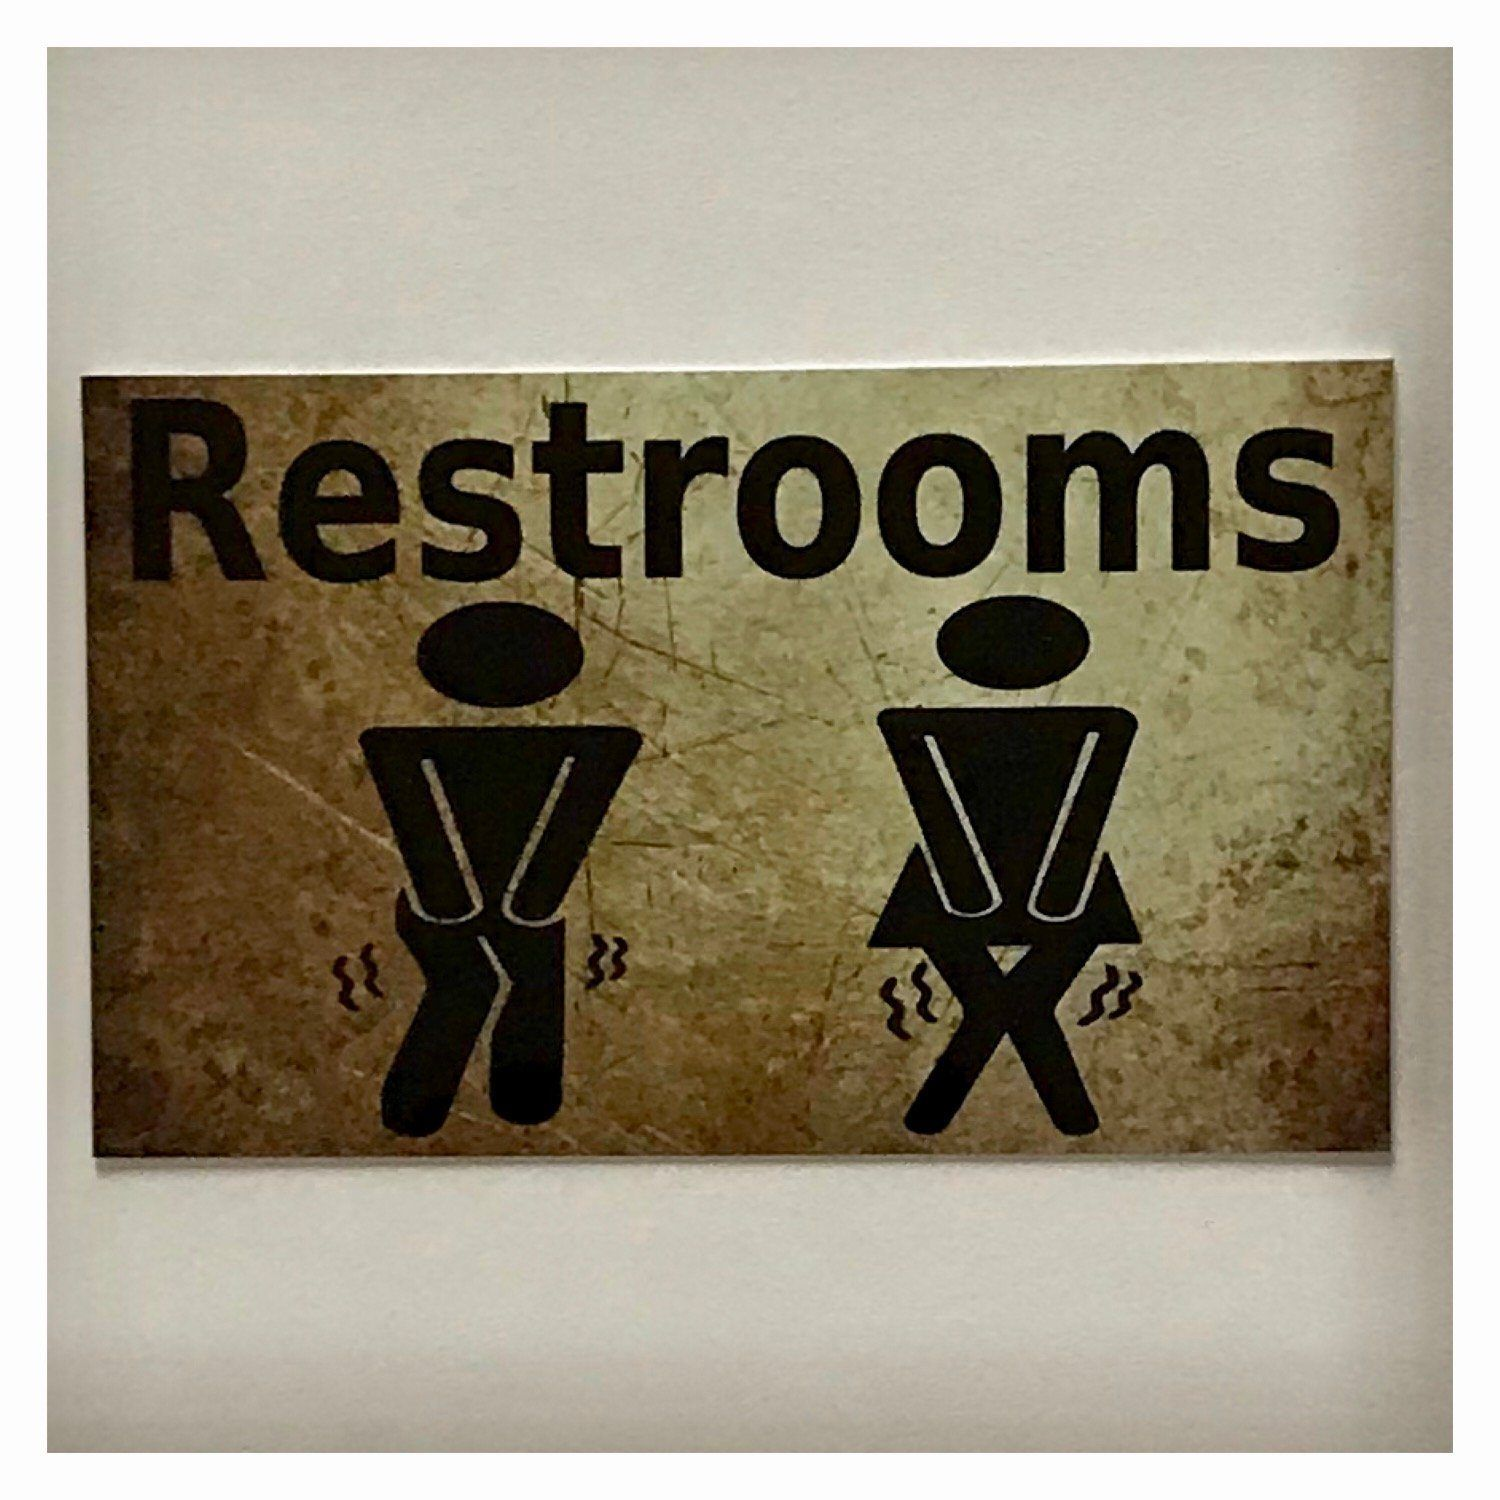 Restrooms Restroom Male Female Busting Toilet Vintage Sign Plaque or Hanging - The Renmy Store